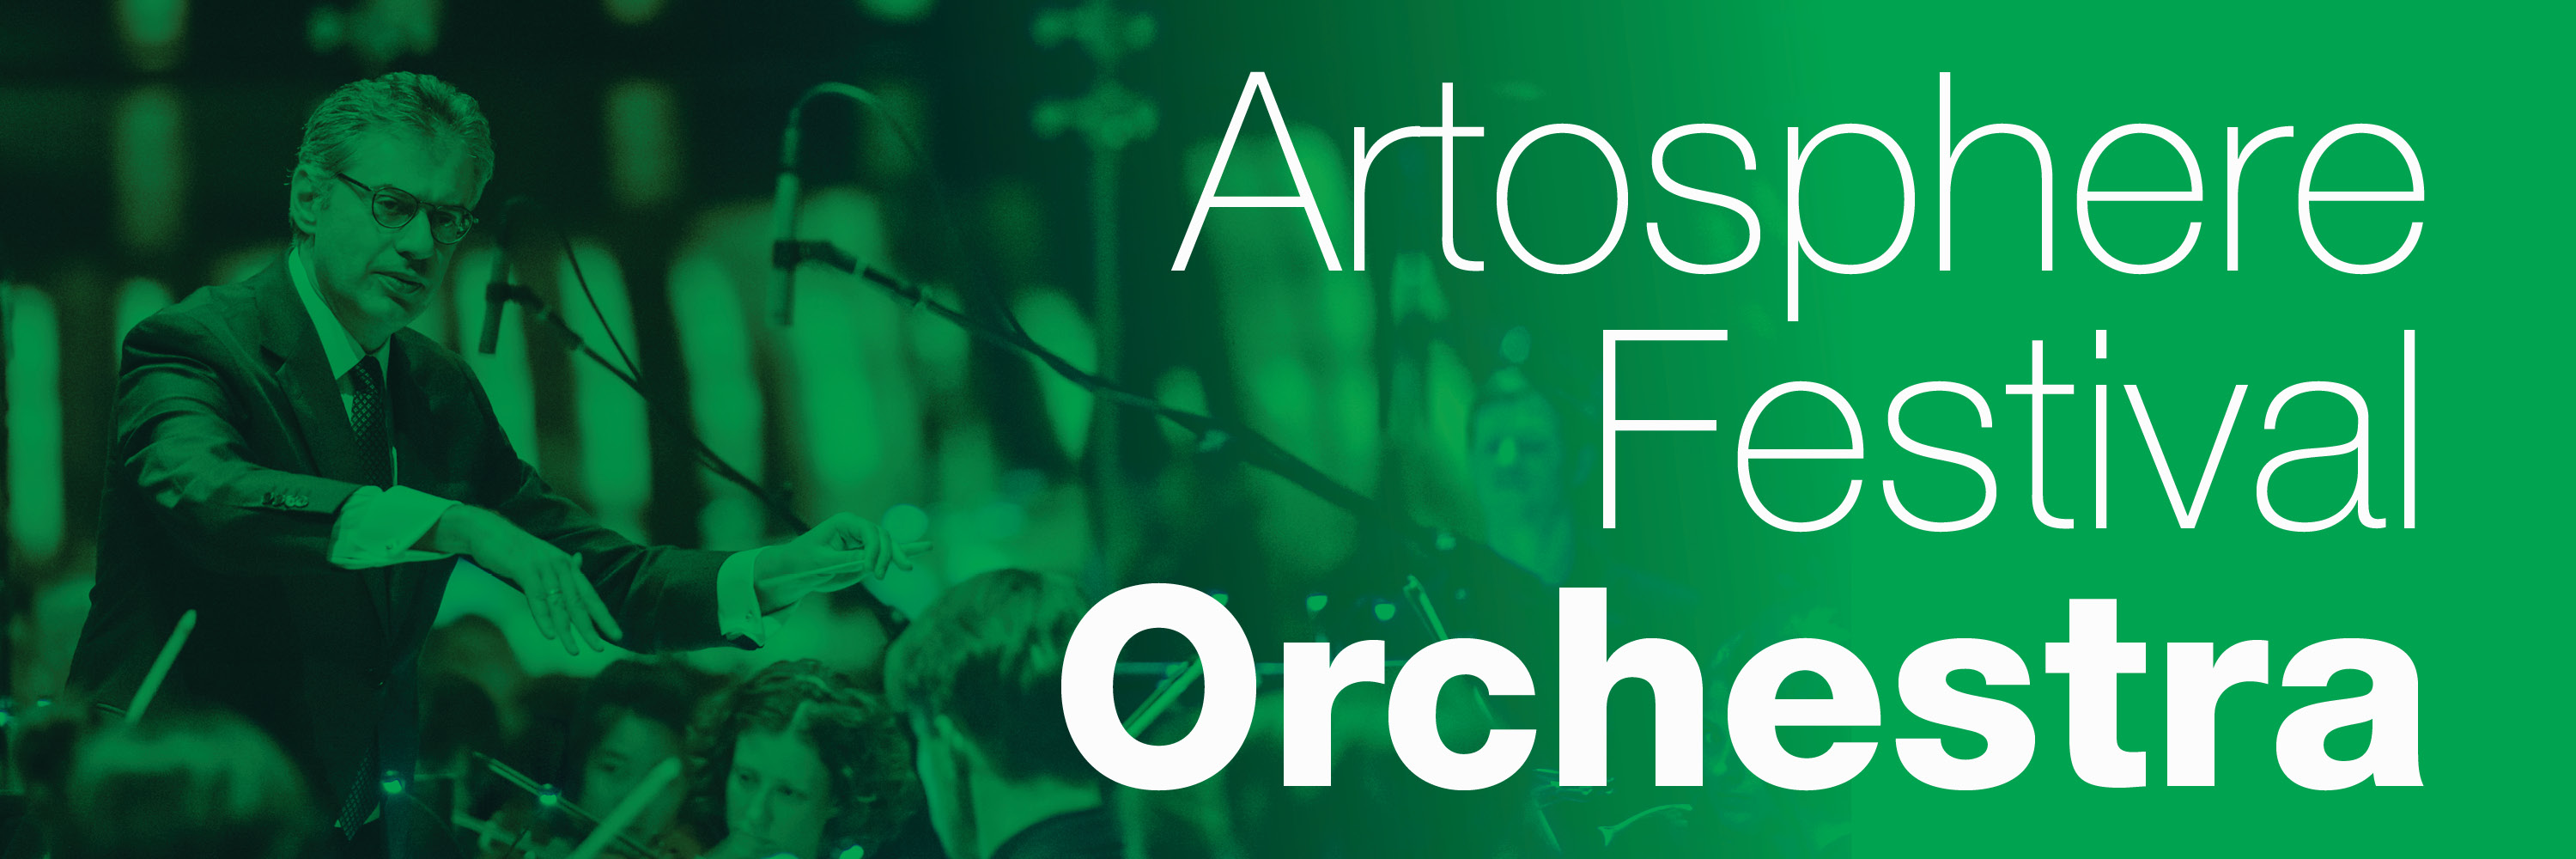 Artosphere Festival Orchestra events